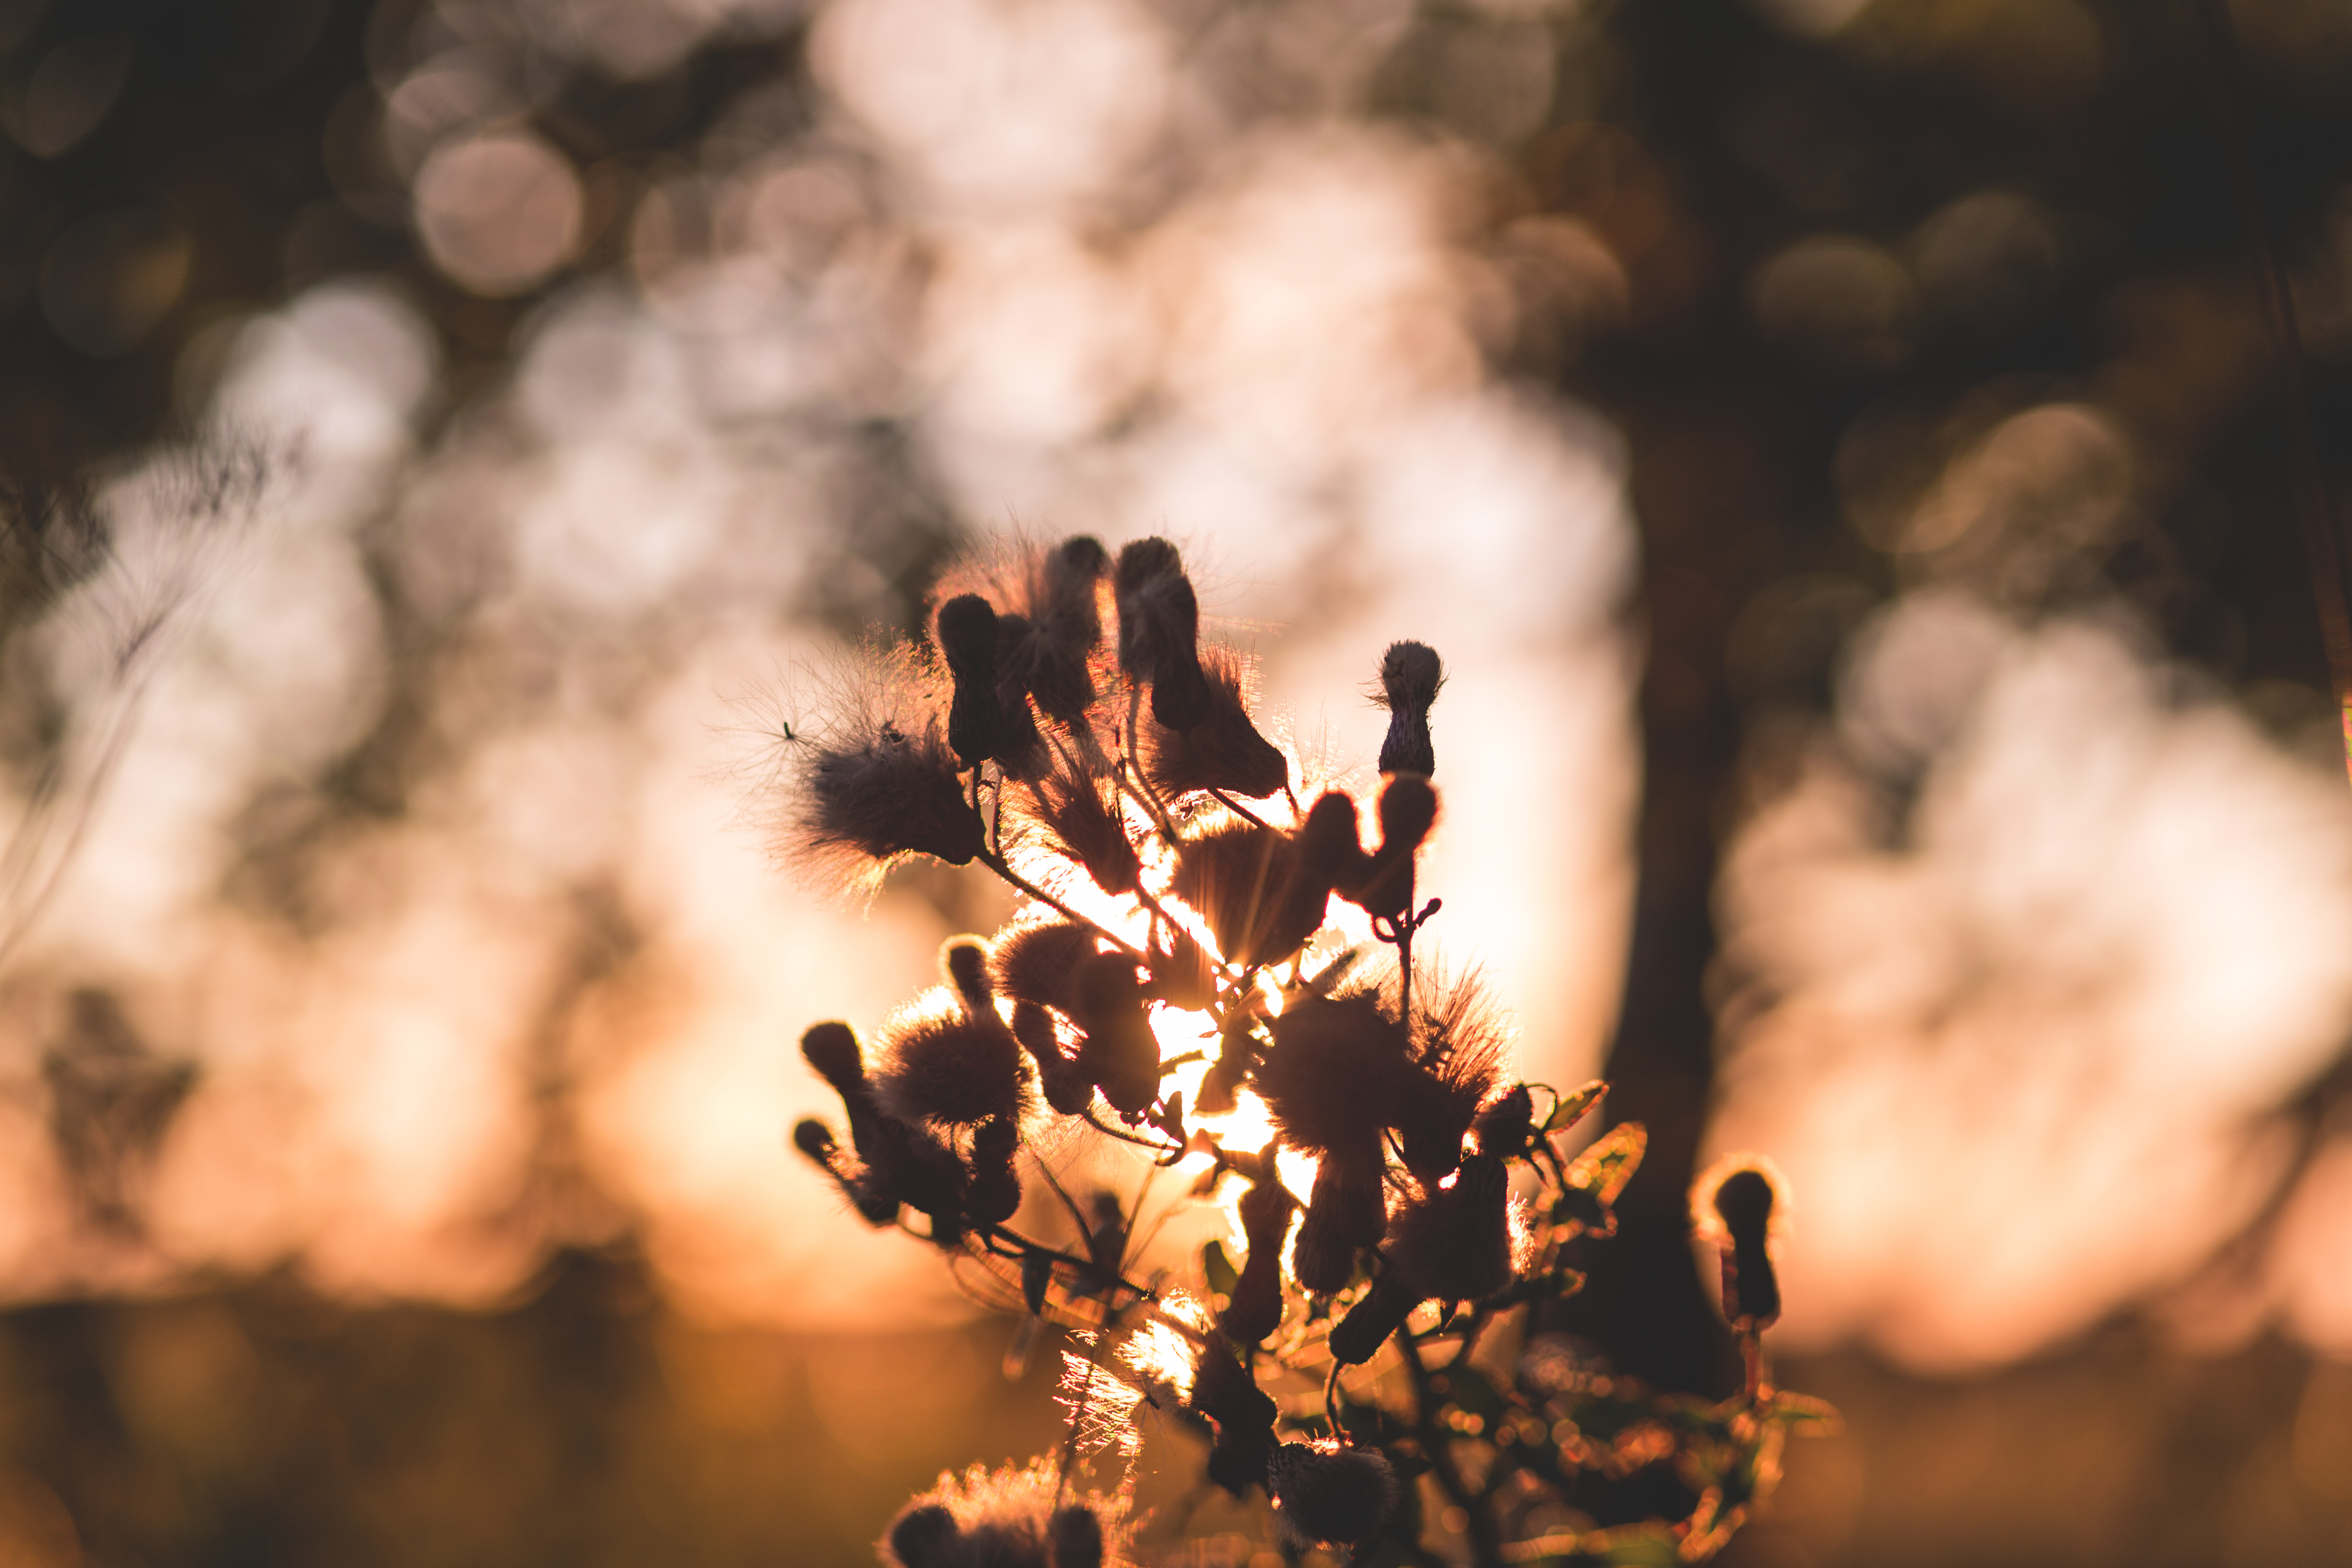 Thistle in sunset light, Background, Summer, Wild, Weeds, HQ Photo